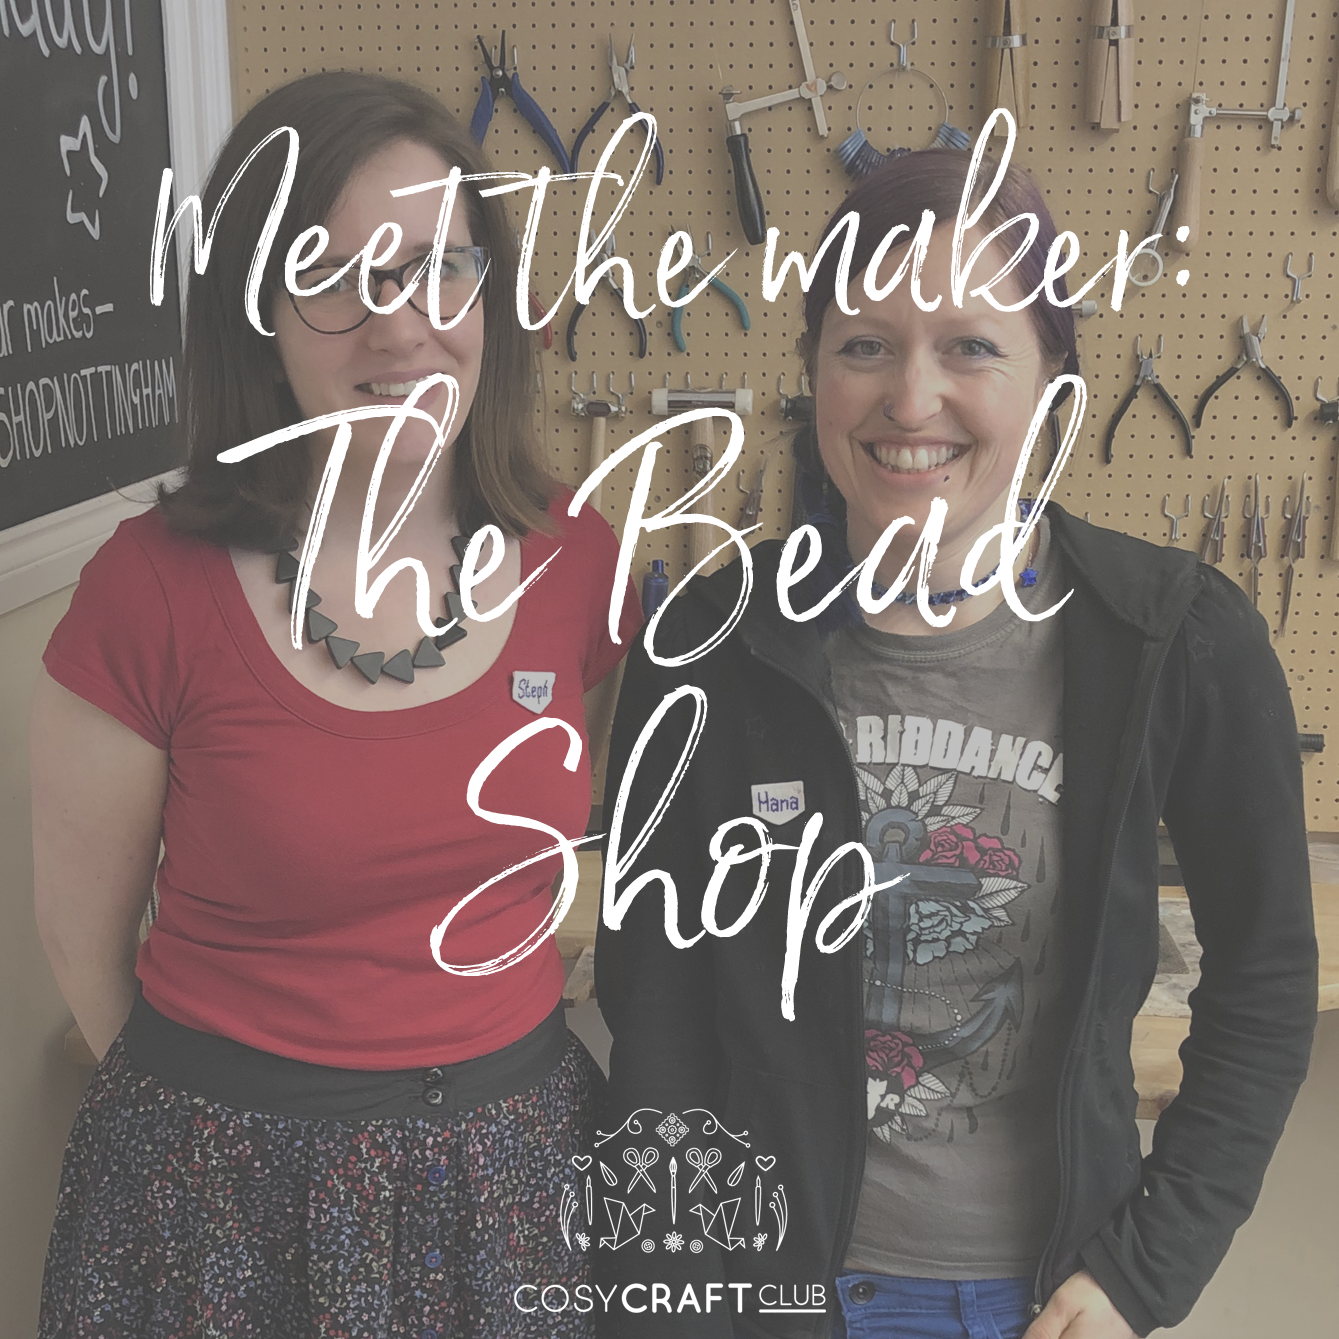 meet the maker - bead shop nottingham.png